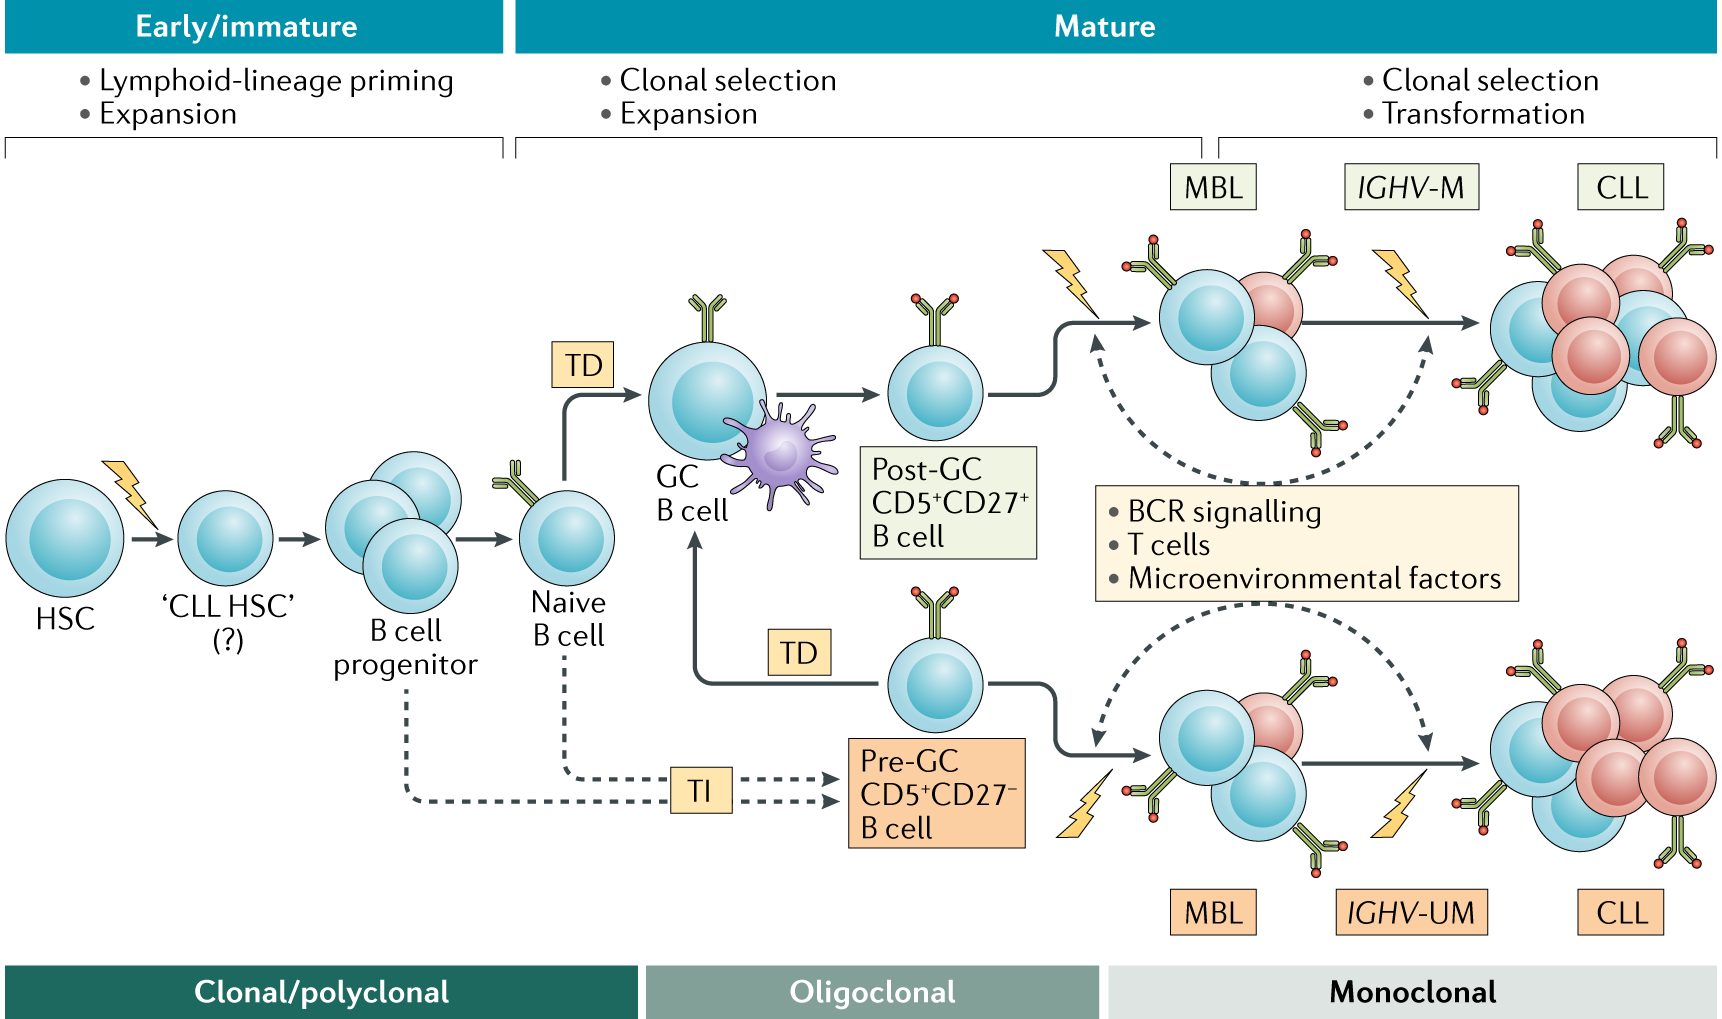 Chronic lymphocytic leukaemia: from genetics to treatment